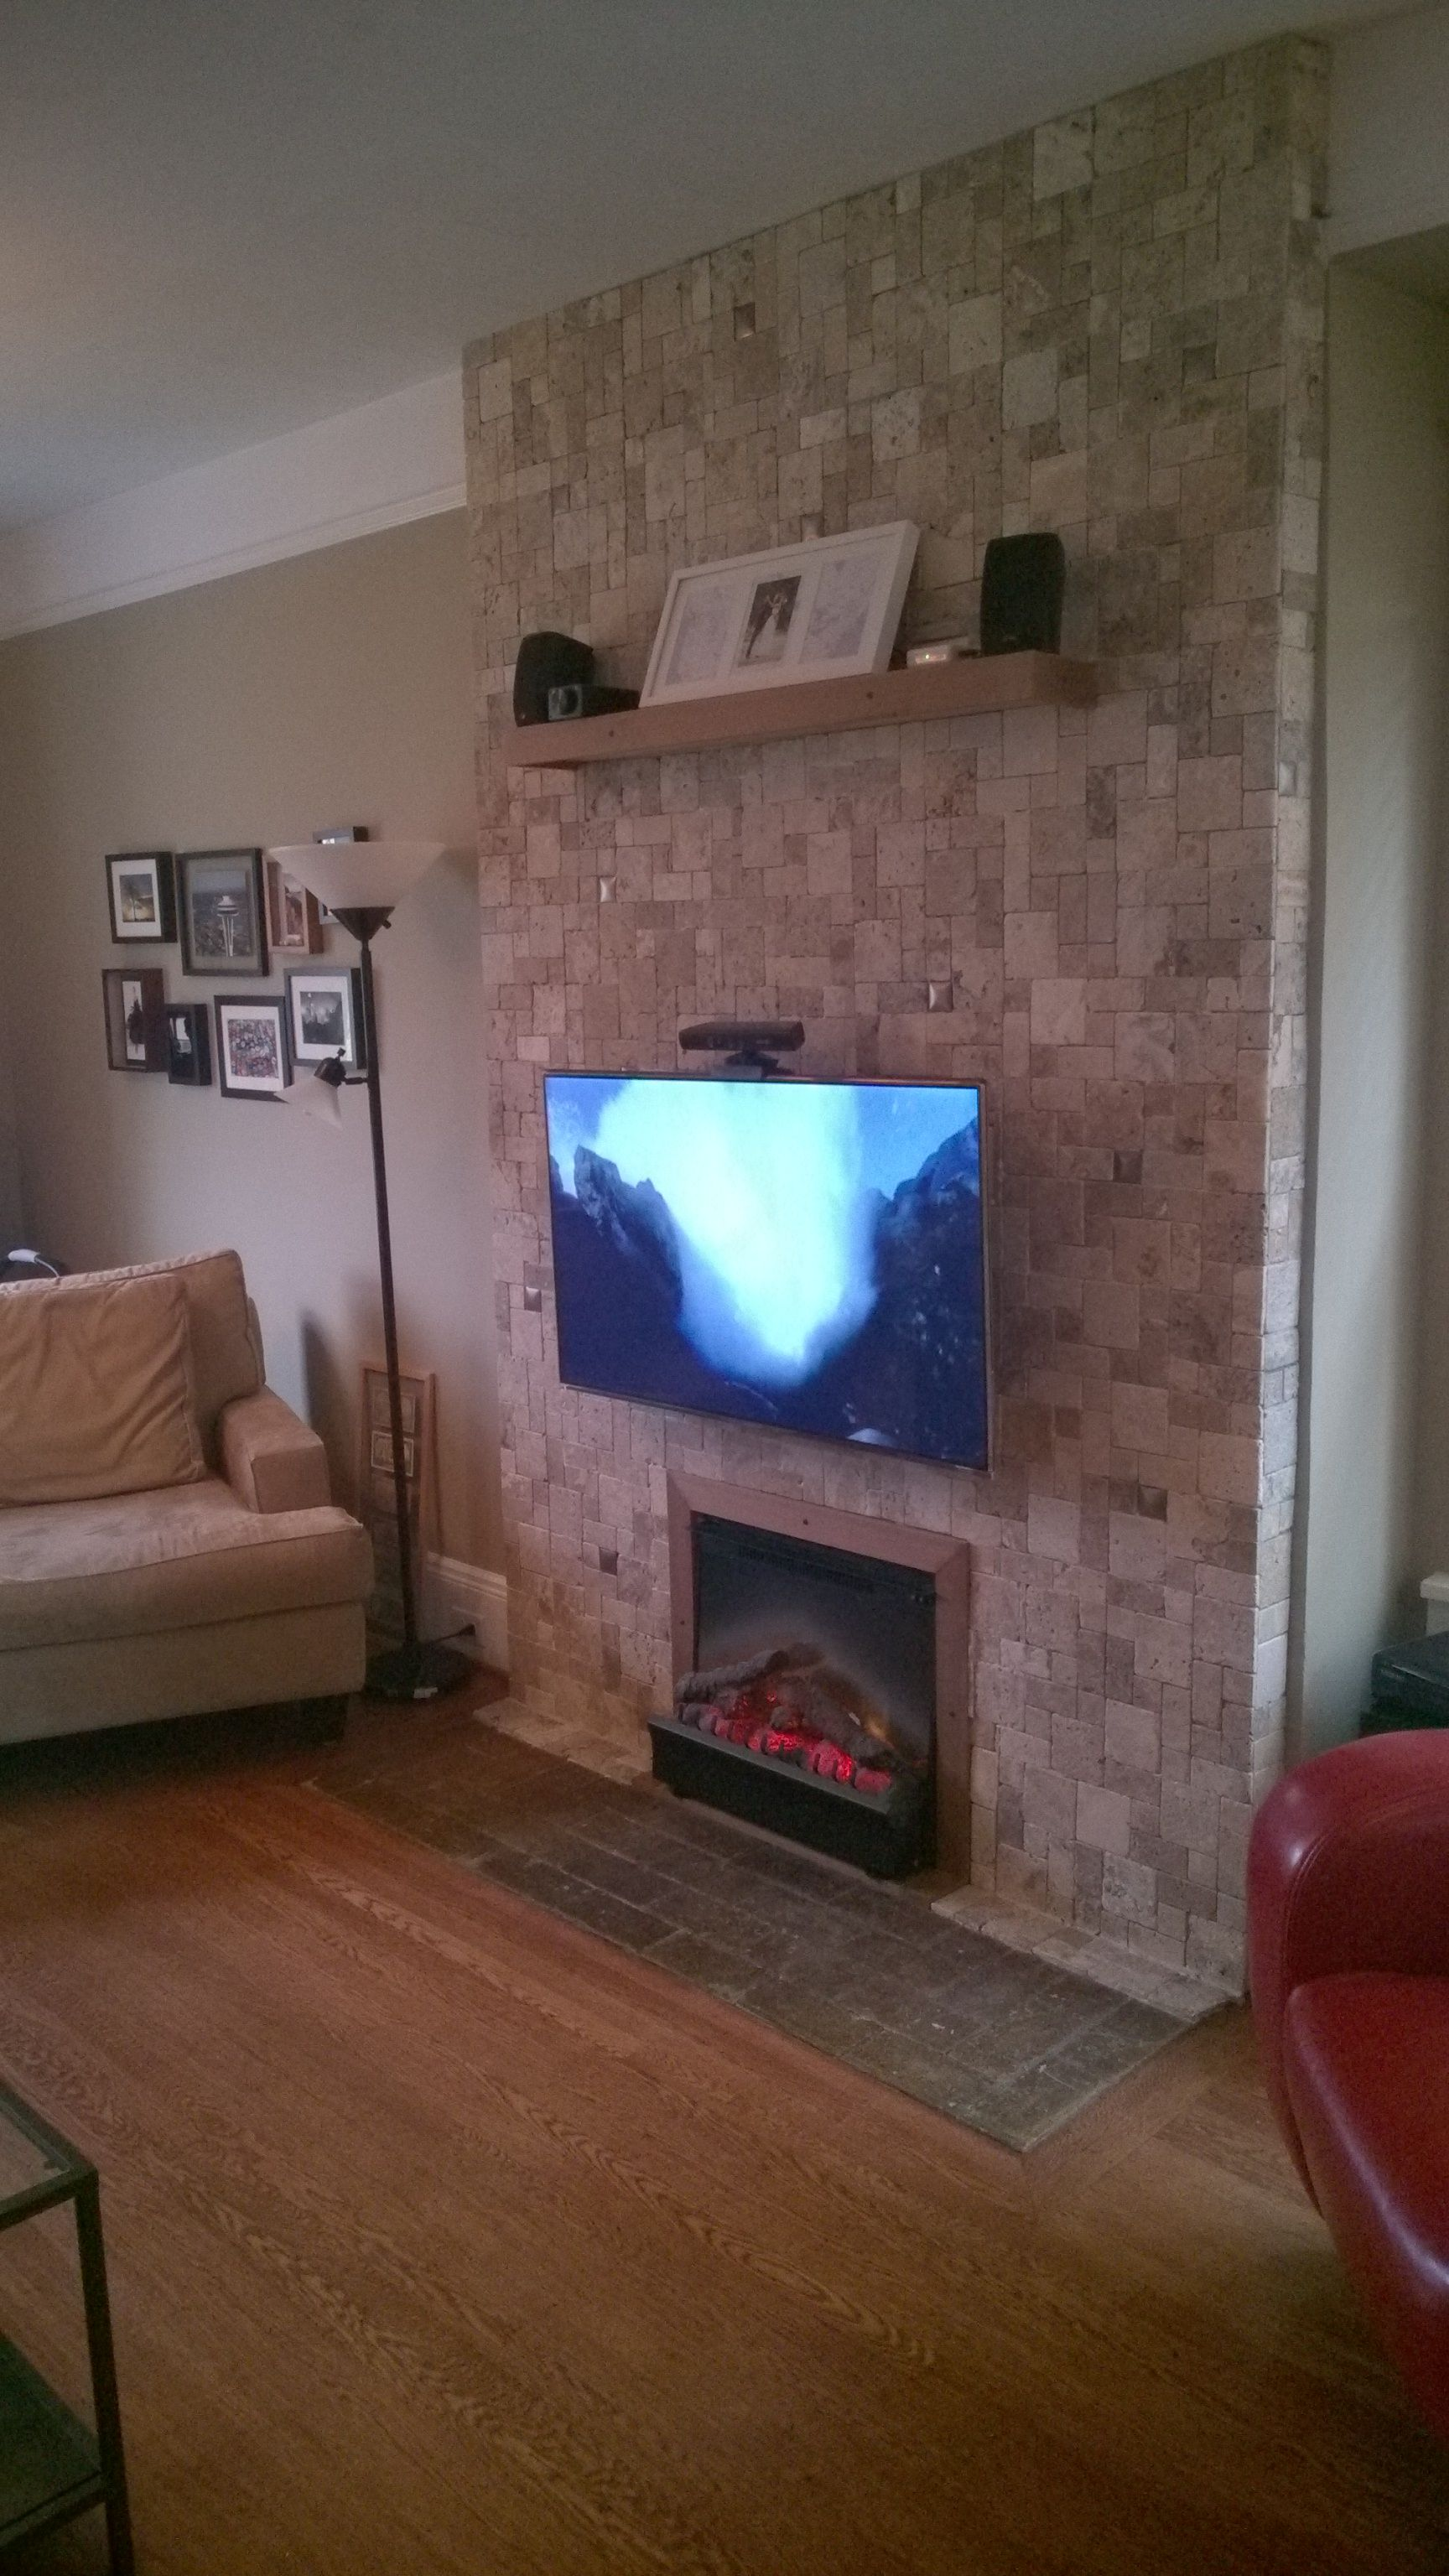 Samsung 46 Tv With An Xbox360 Kinect Mounted An Omnimout Lift30x Above An Electric Fireplace